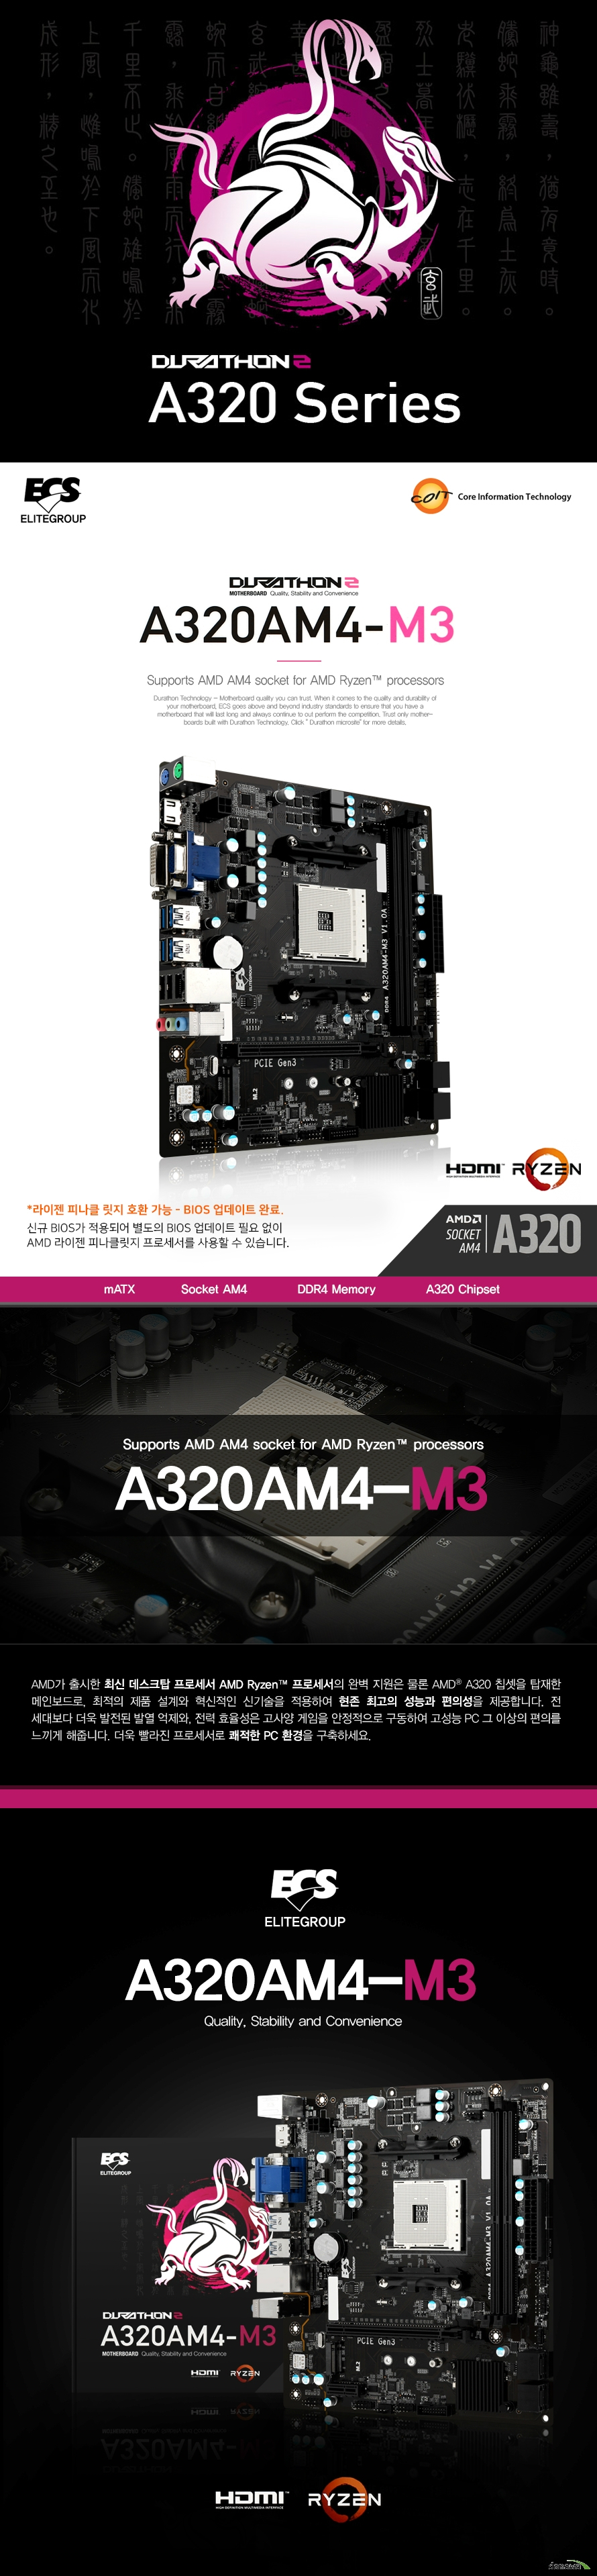 DURATHON 2        a320 Series                supports amd am4 socket for amd ryzen processors